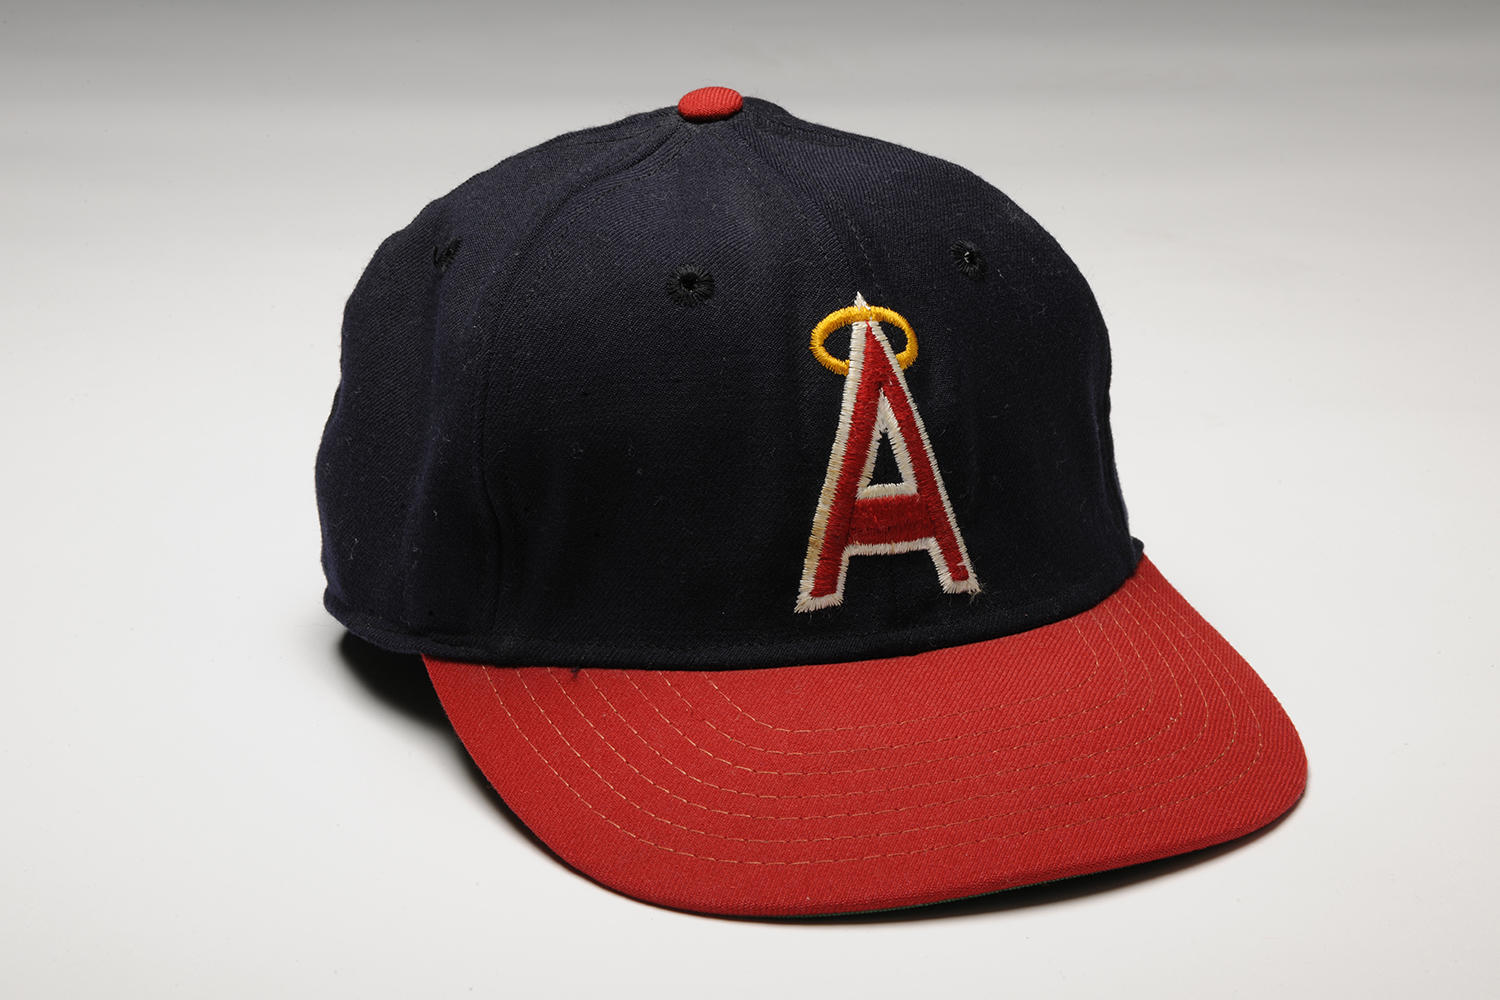 This cap, which Nolan Ryan wore while pitching his third no-hitter on Sept. 28, 1974, is part of the National Baseball Hall of Fame's collection. (Milo Stewart Jr. / National Baseball Hall of Fame)